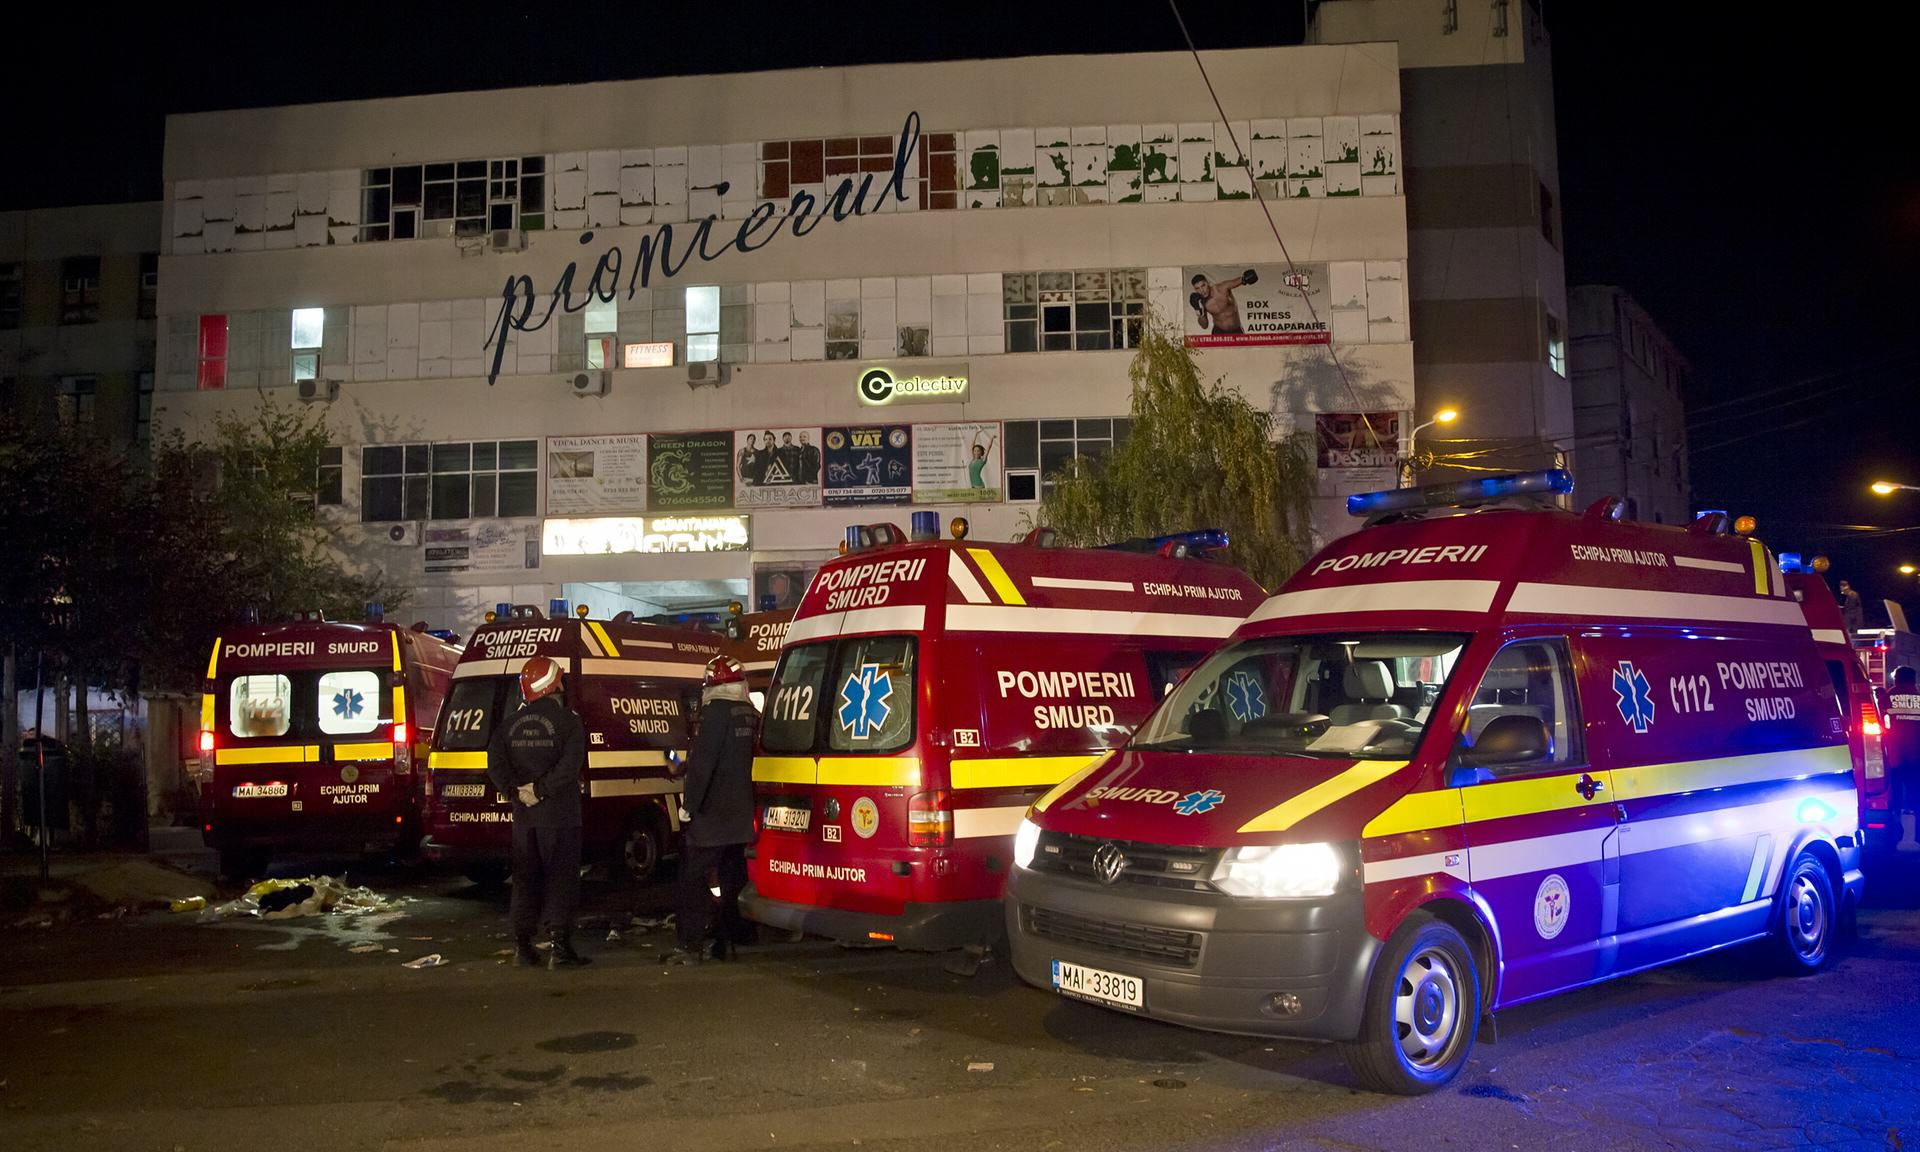 UNILAD 474429488 At Least 27 Dead And 180 Injured In Romanian Halloween Nightclub Explosion